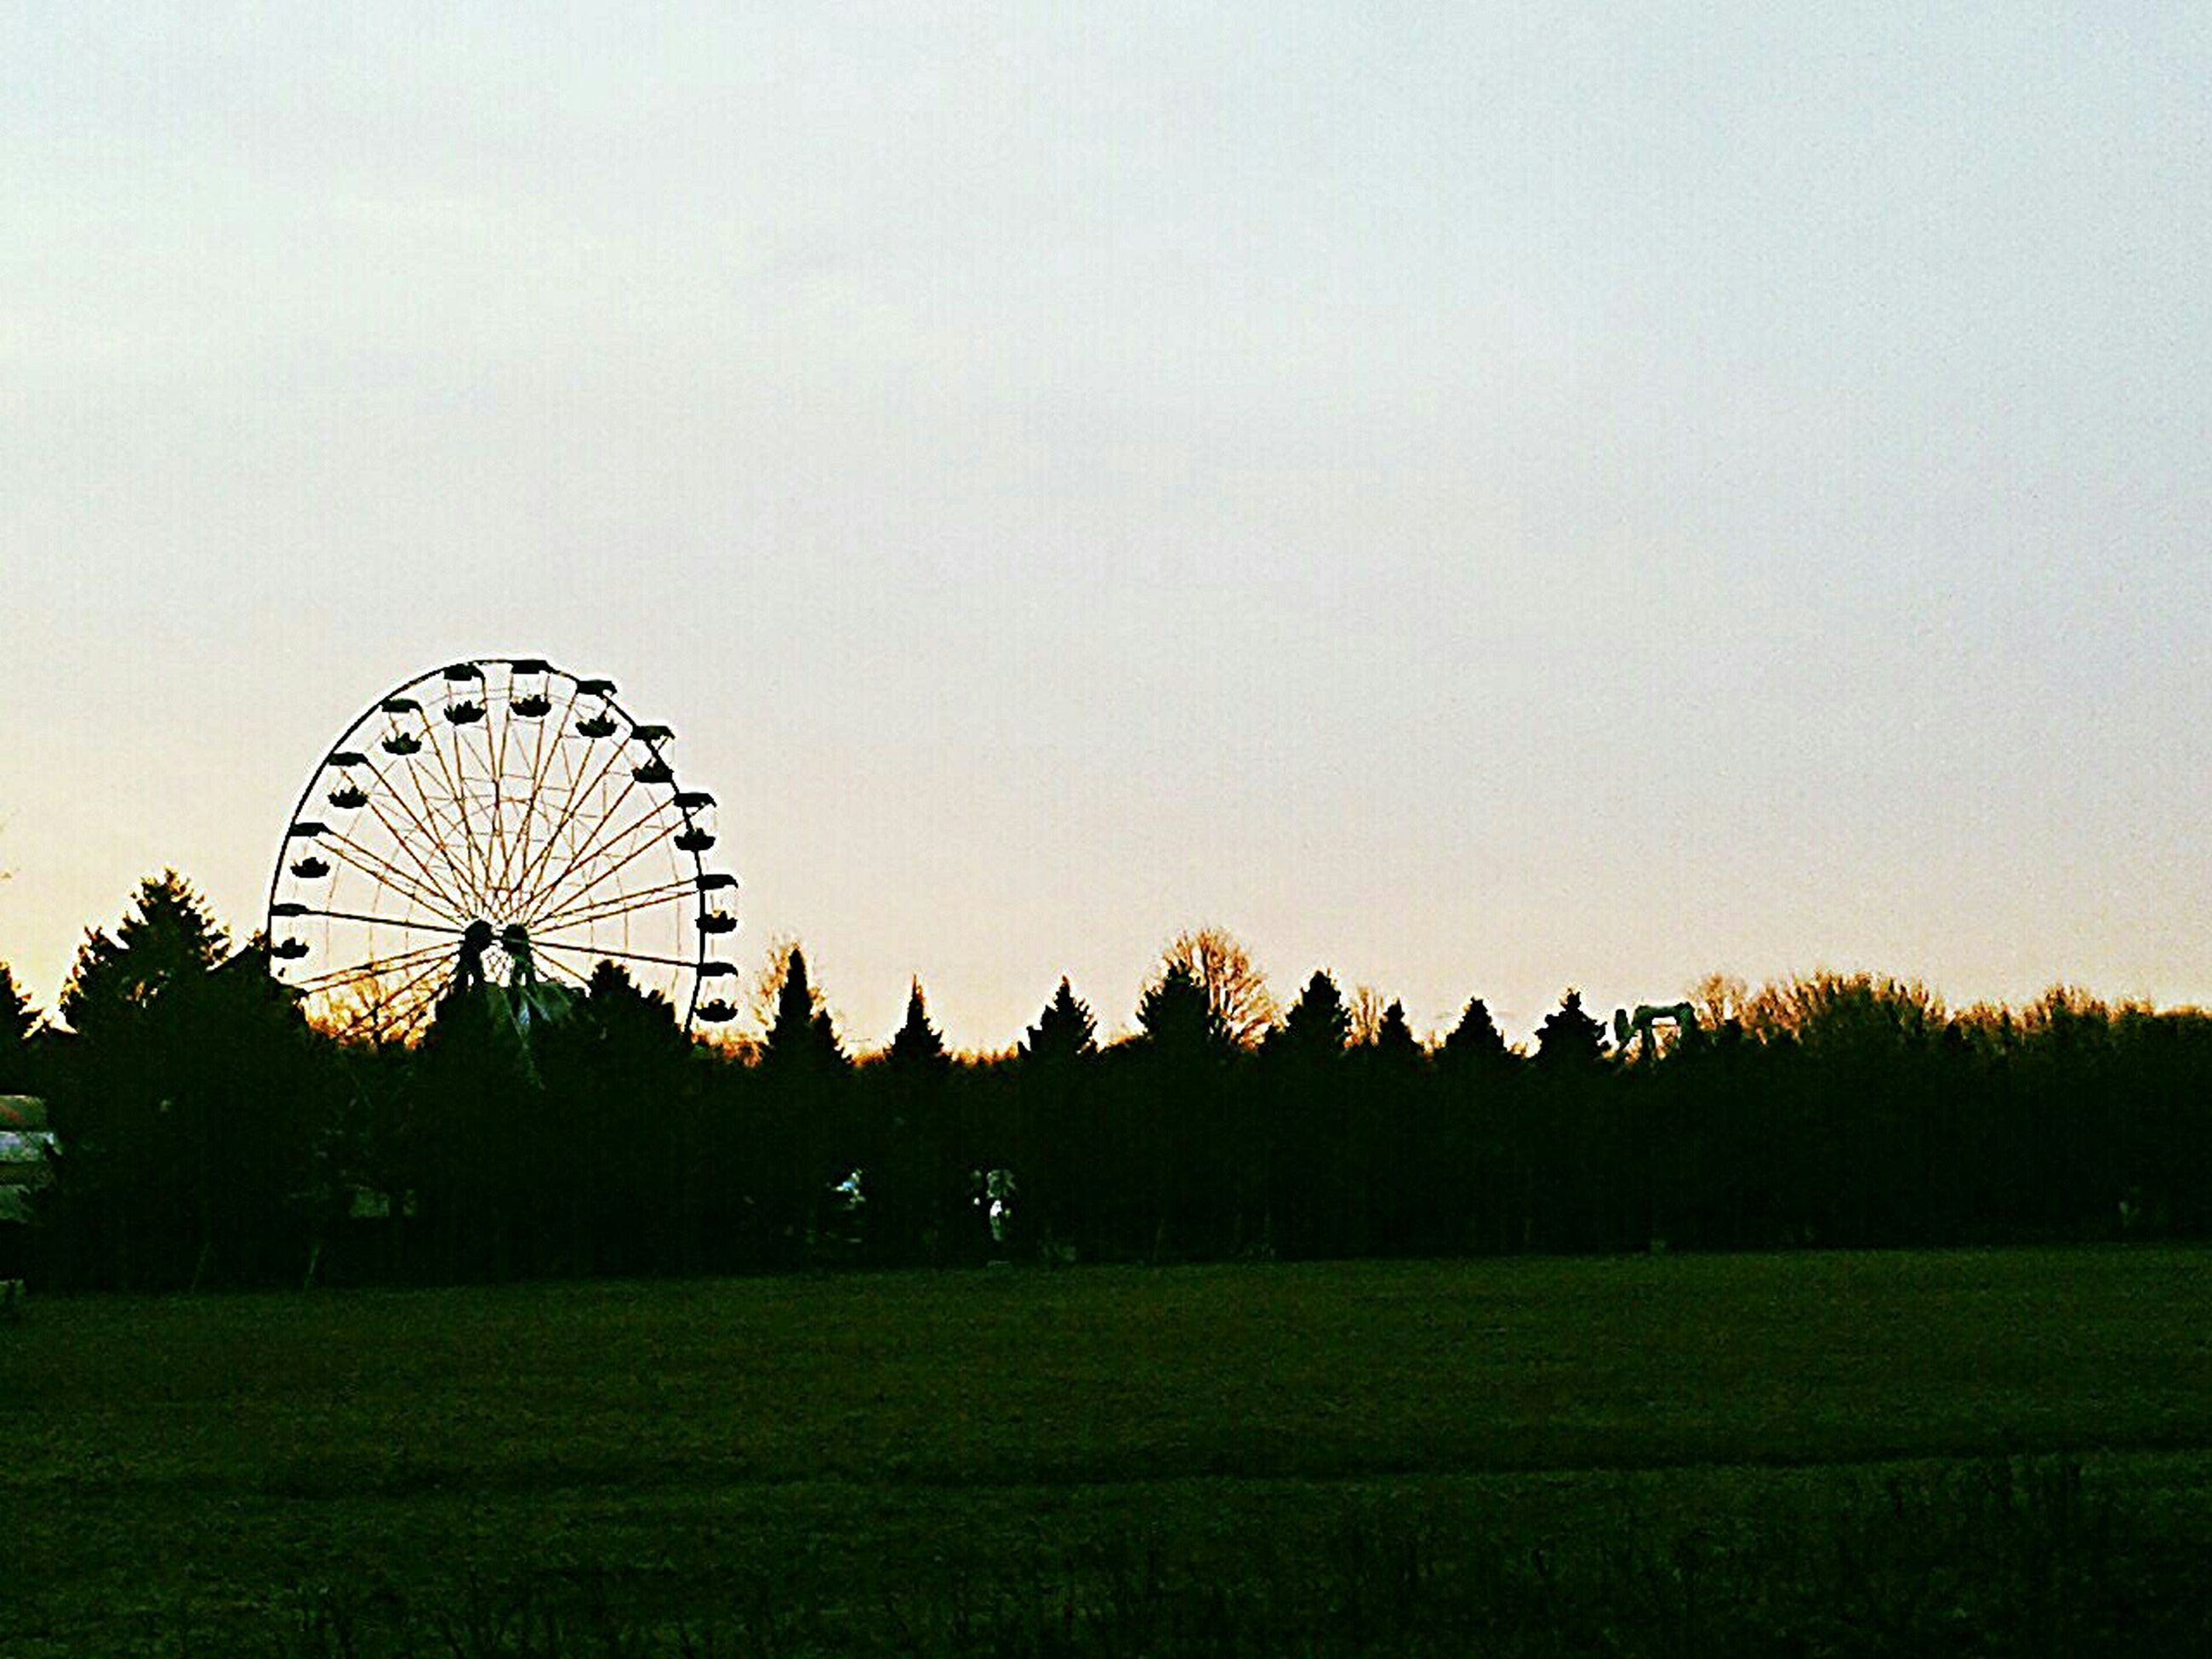 ferris wheel, clear sky, amusement park, field, amusement park ride, grass, arts culture and entertainment, tree, copy space, sky, landscape, sunset, architecture, built structure, outdoors, nature, circle, rural scene, growth, low angle view